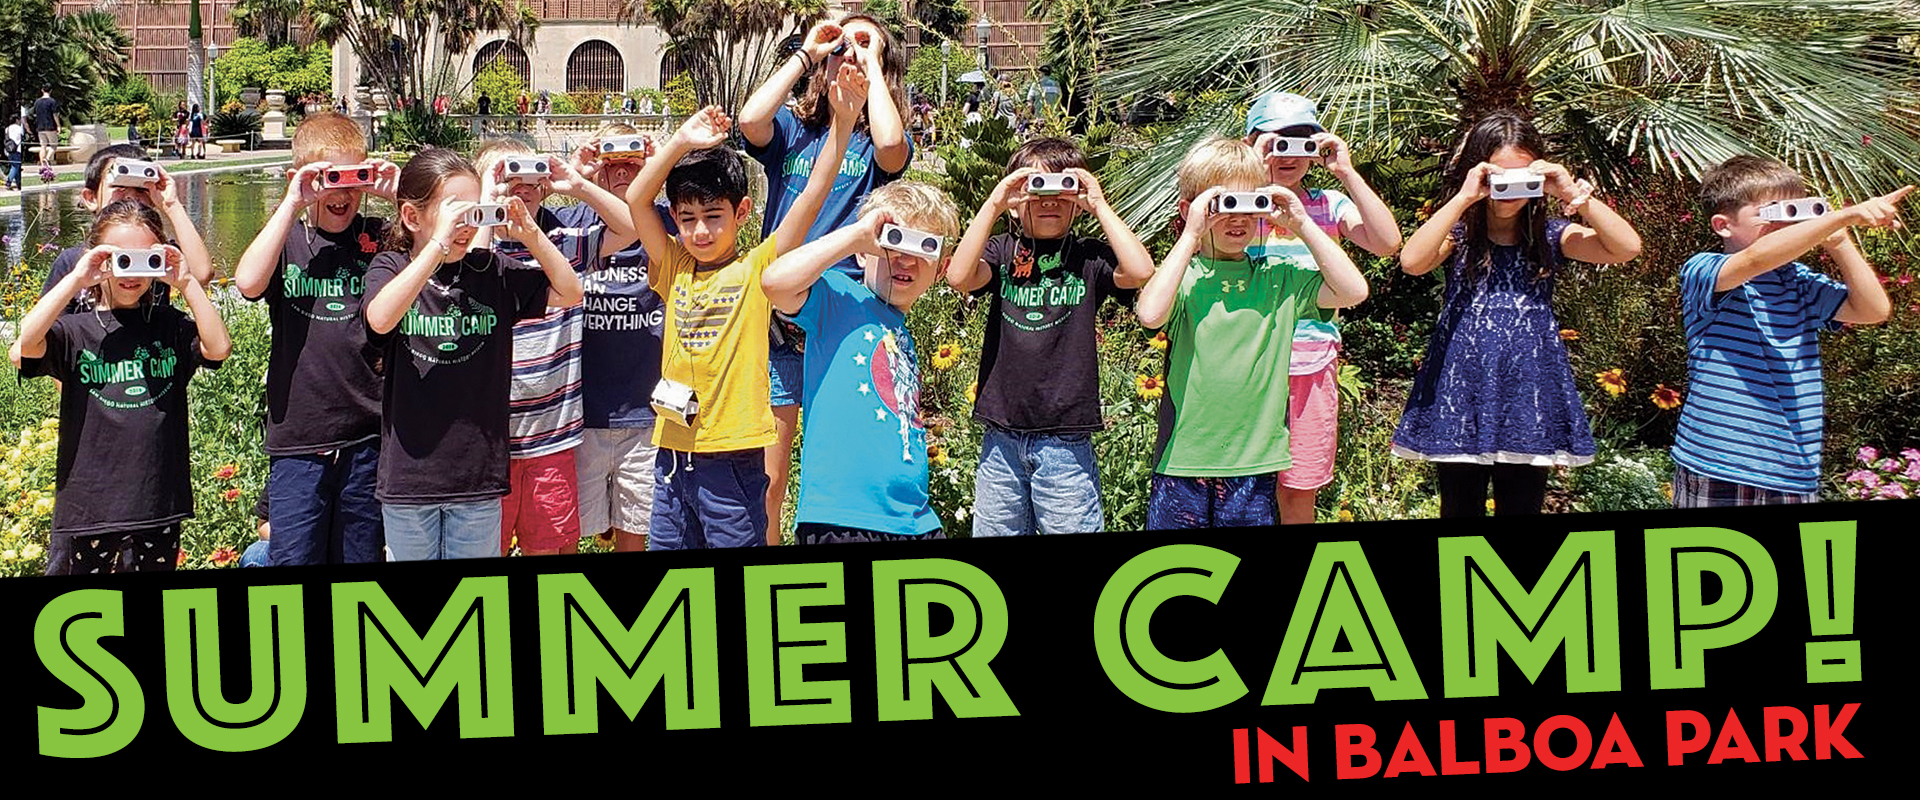 San Diego's Best Summer Camp Destination is Balboa Park!